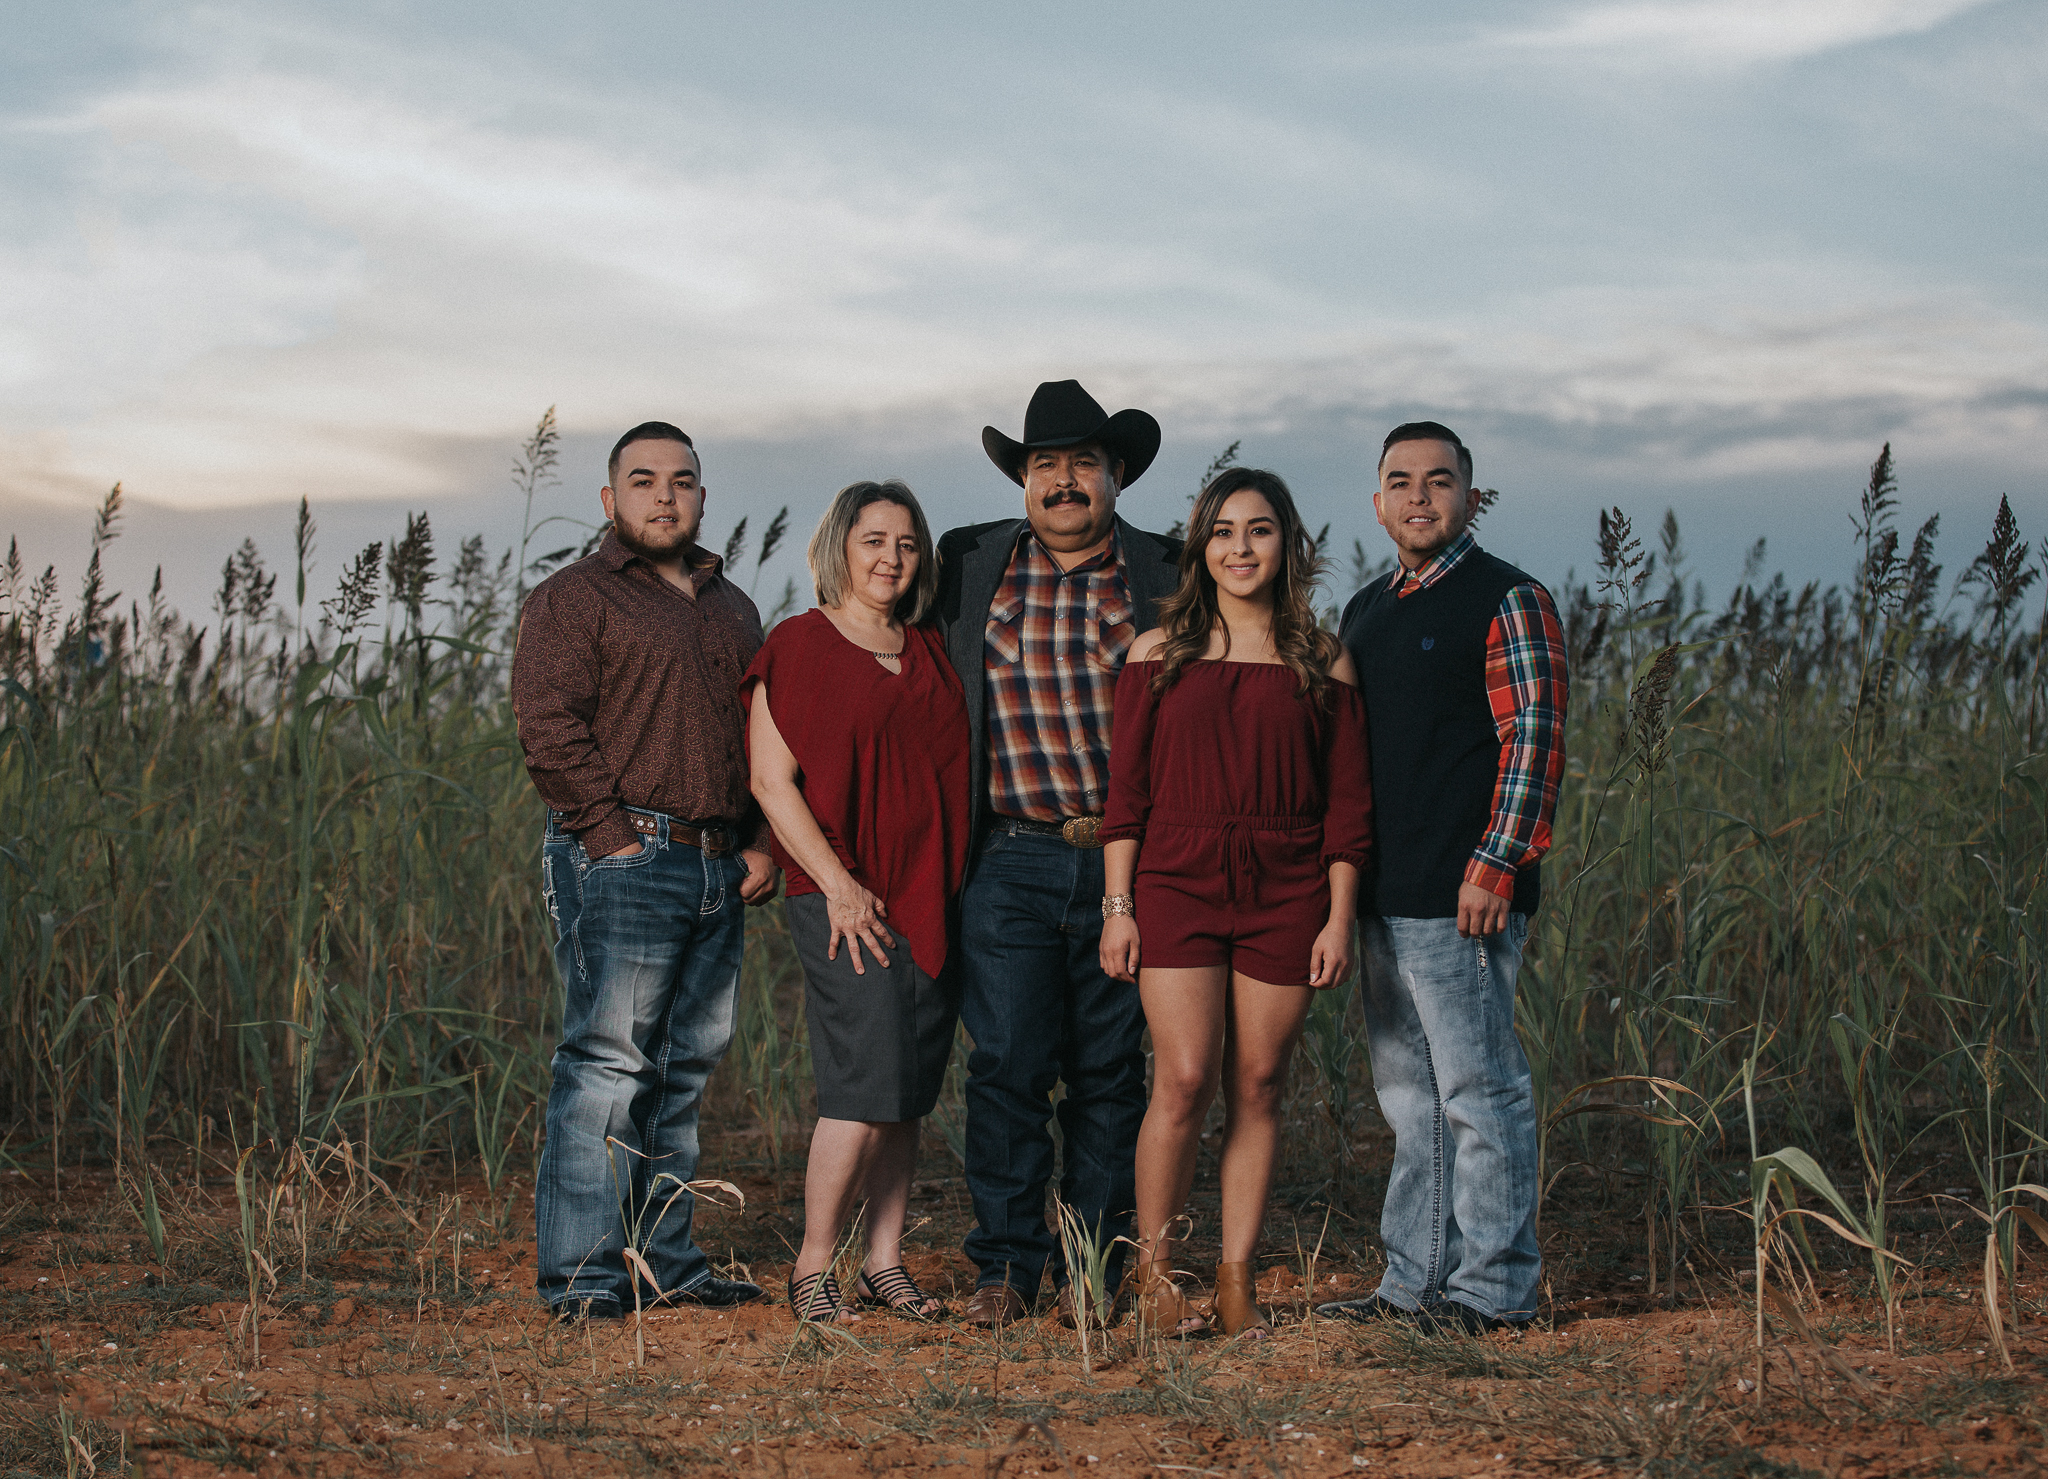 richard-guerra-photography-wedding-quinceañera-senior-family-maternity-children-cake-smash-photographer-portraits-southeastern-new-mexico-west-texas-hobbs-eunice-jal-lovington-lubbock-odessa-midland-seminole-seagraves-andrews-brownfield